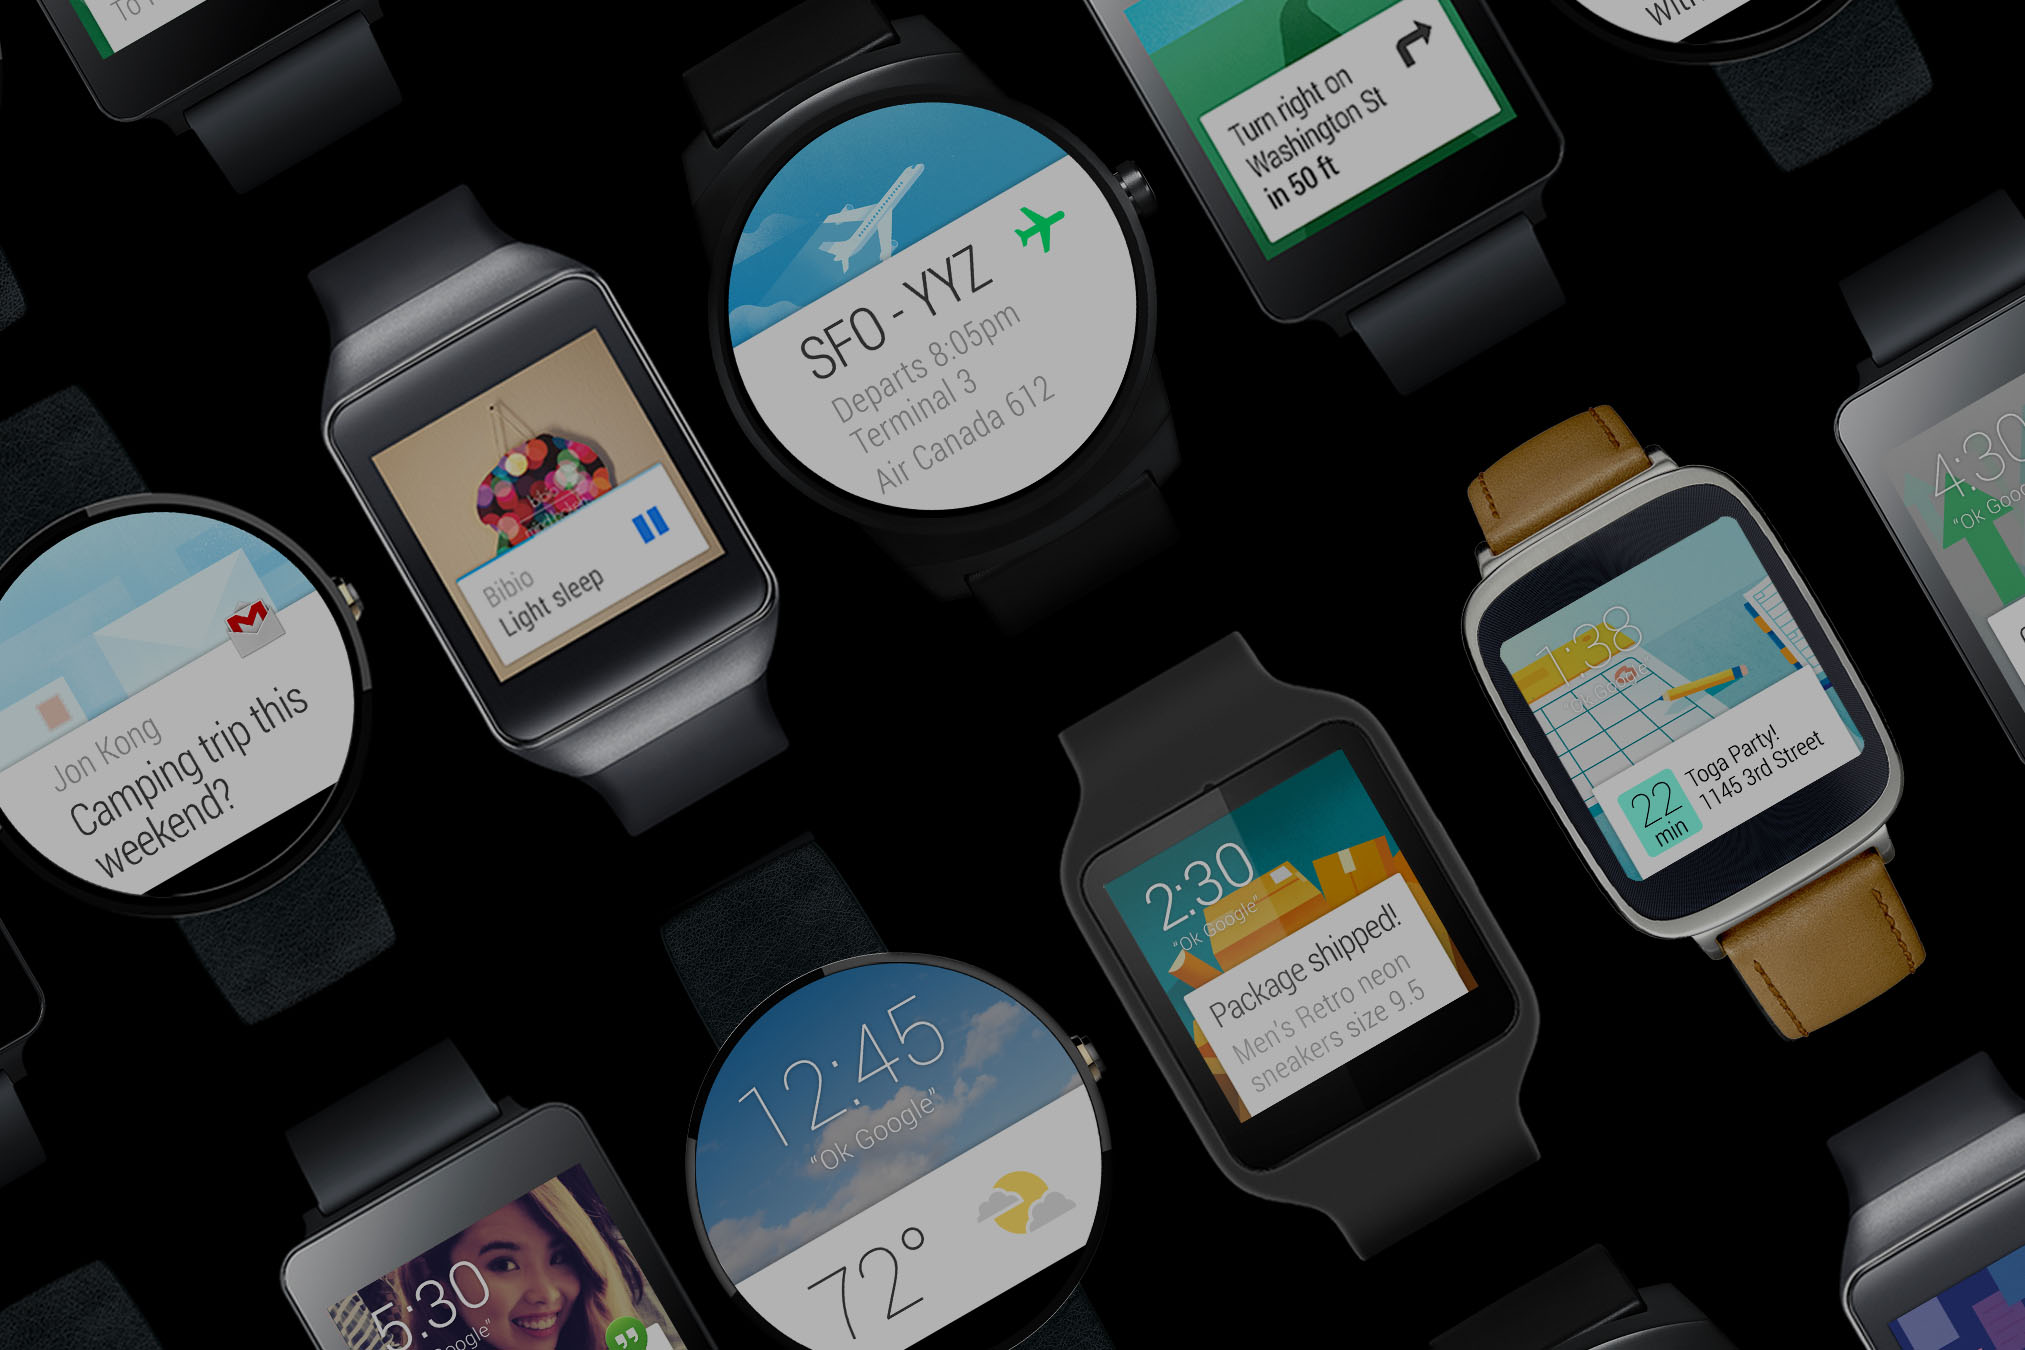 pokémon go y android wear